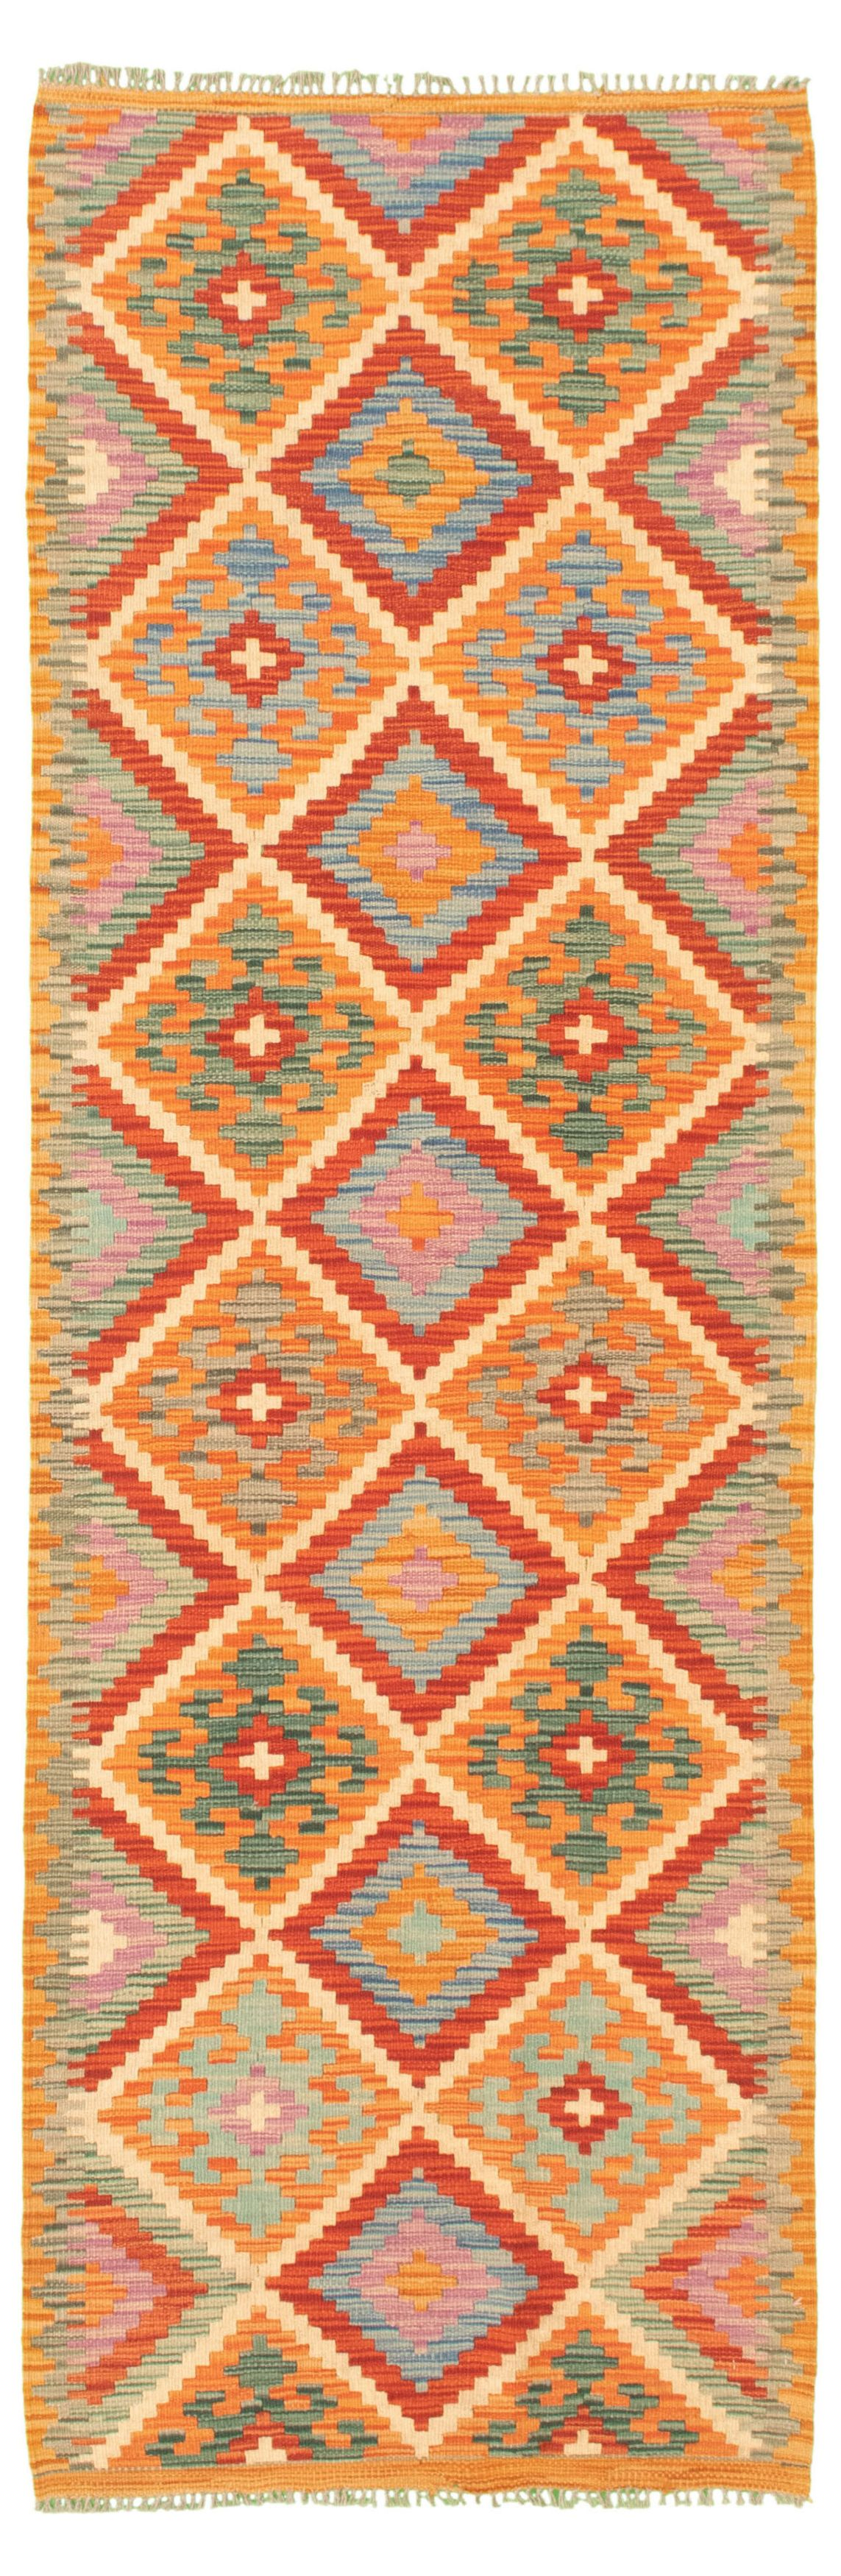 """Hand woven Bold and Colorful  Light Orange Wool Kilim 2'8"""" x 8'4"""" Size: 2'8"""" x 8'4"""""""